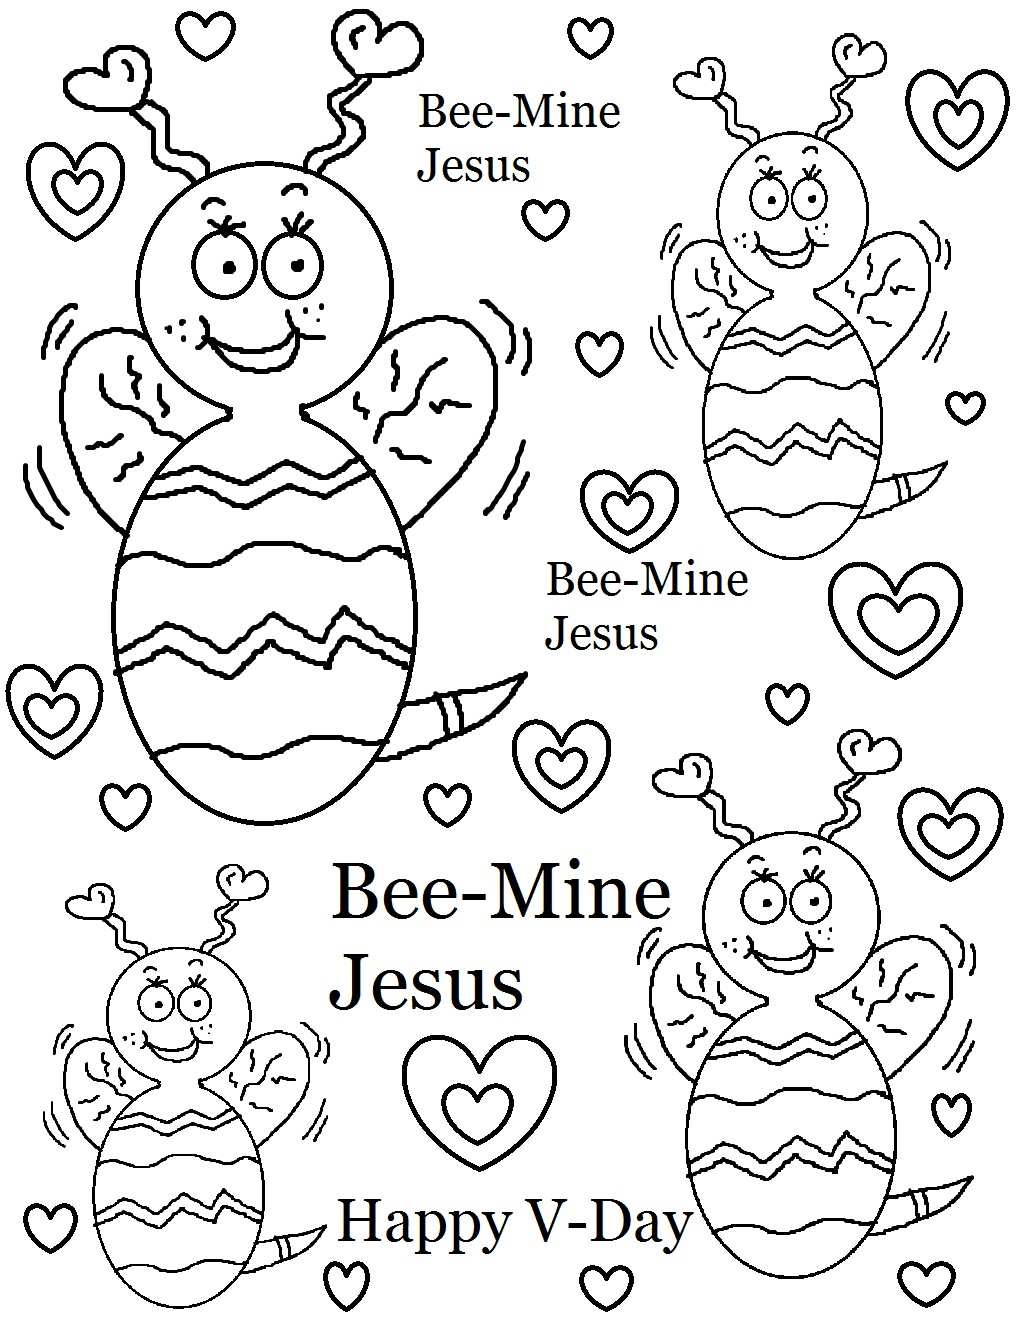 Adult Best Christian Valentines Day Coloring Pages Images top valentines day coloring pages for sunday school bee mine valentine jesus gallery images